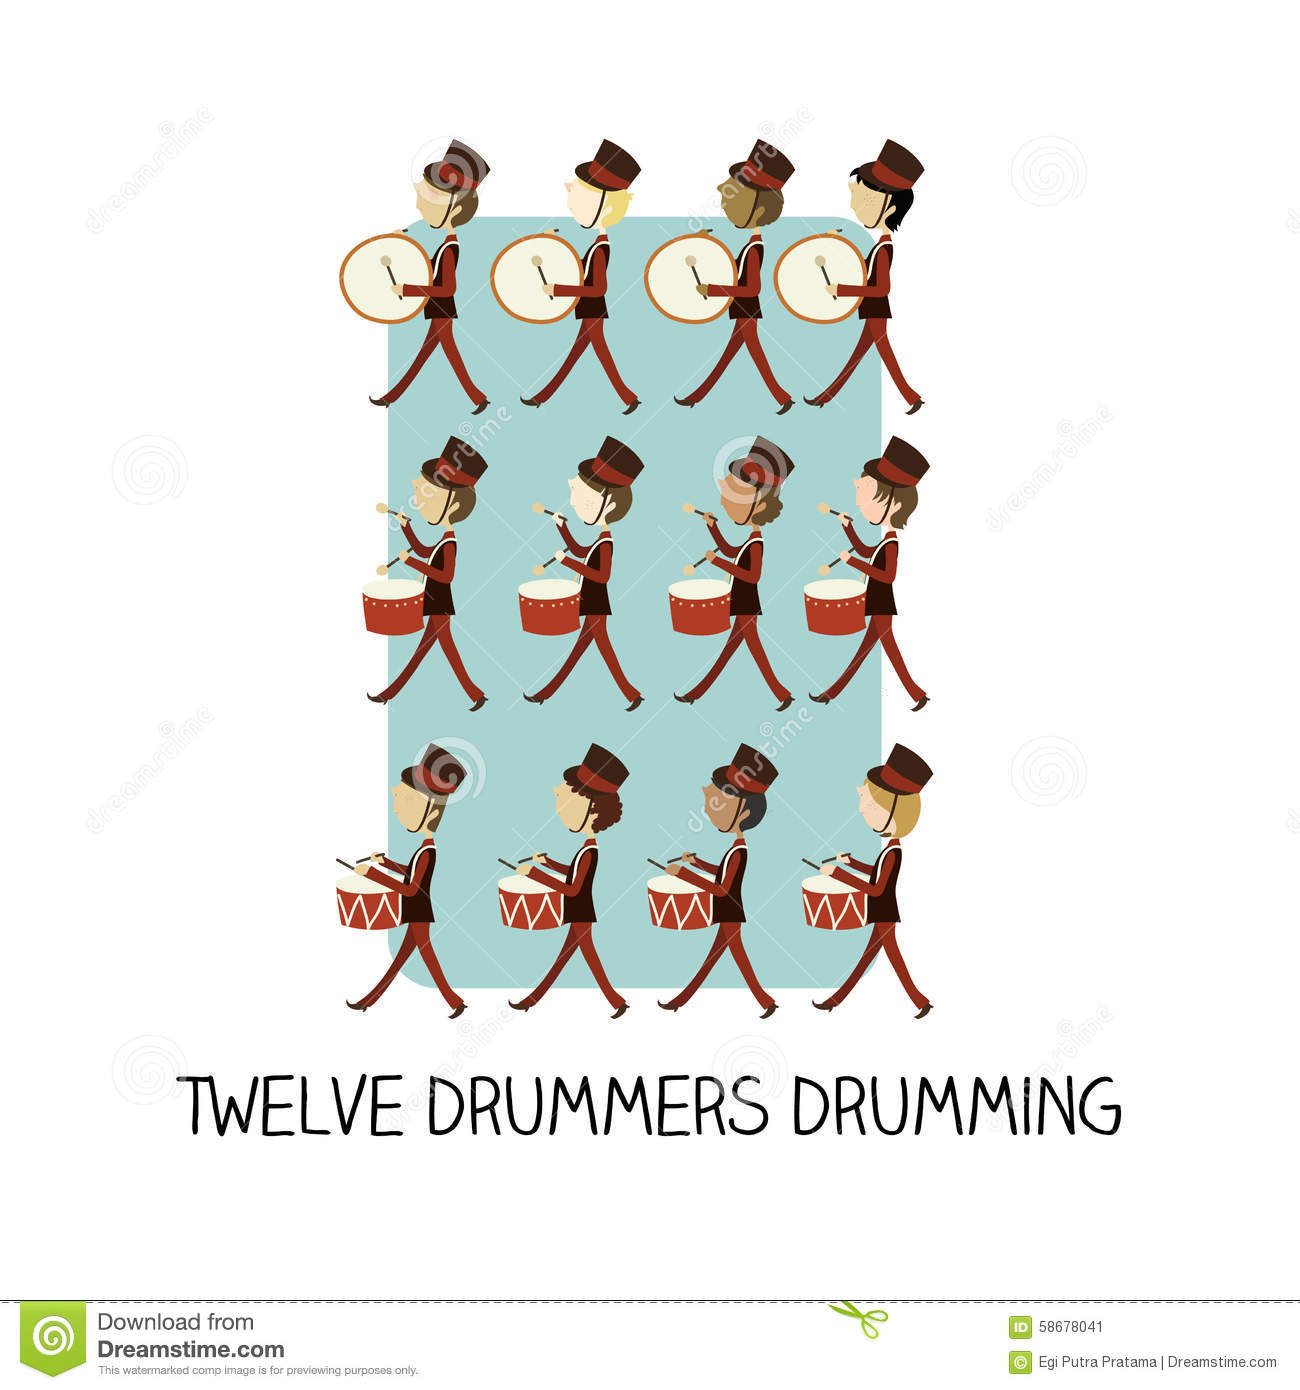 download 12 day of christmas twelve drummers drumming stock illustration illustration of flat - 12 Day Of Christmas